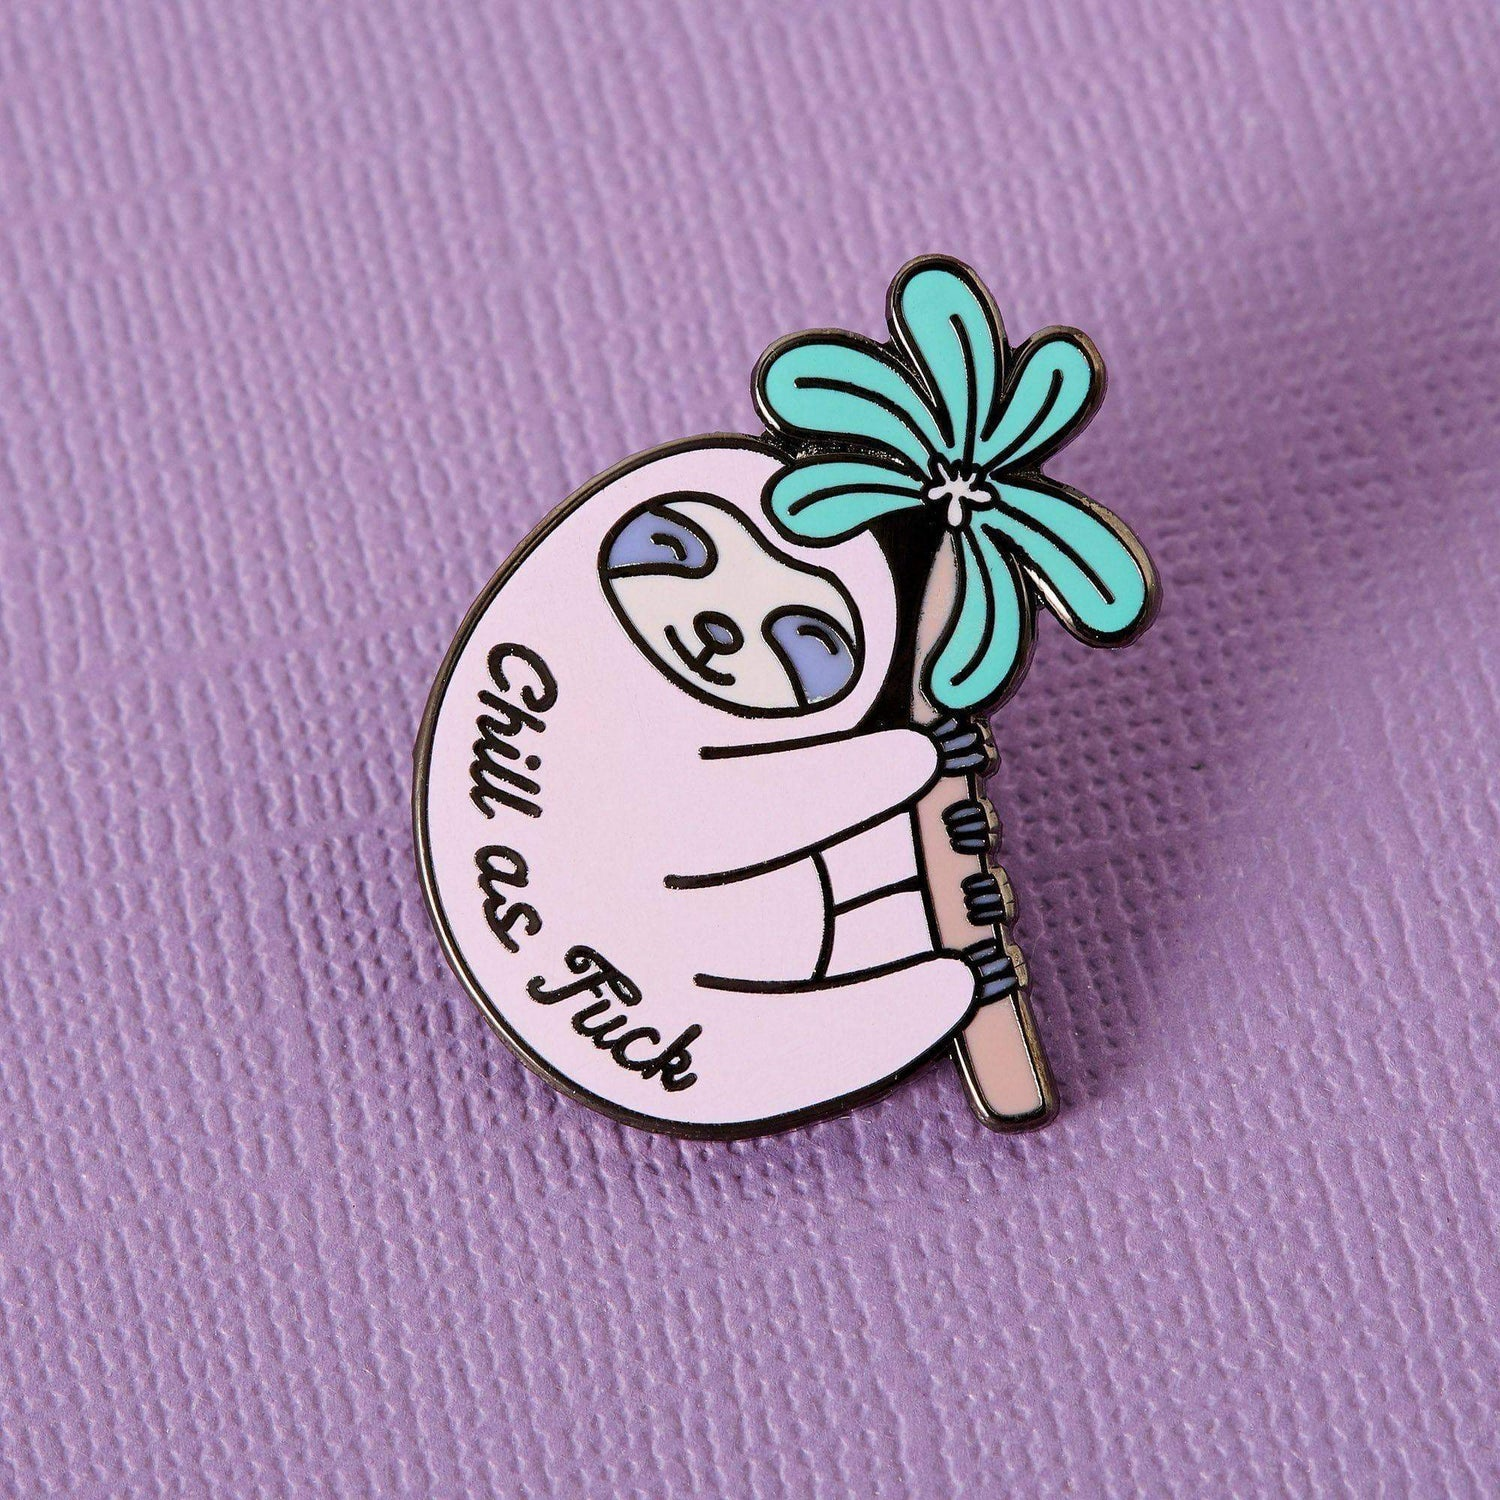 Punky Pins Chill as Fuck Sloth Enamel Pin